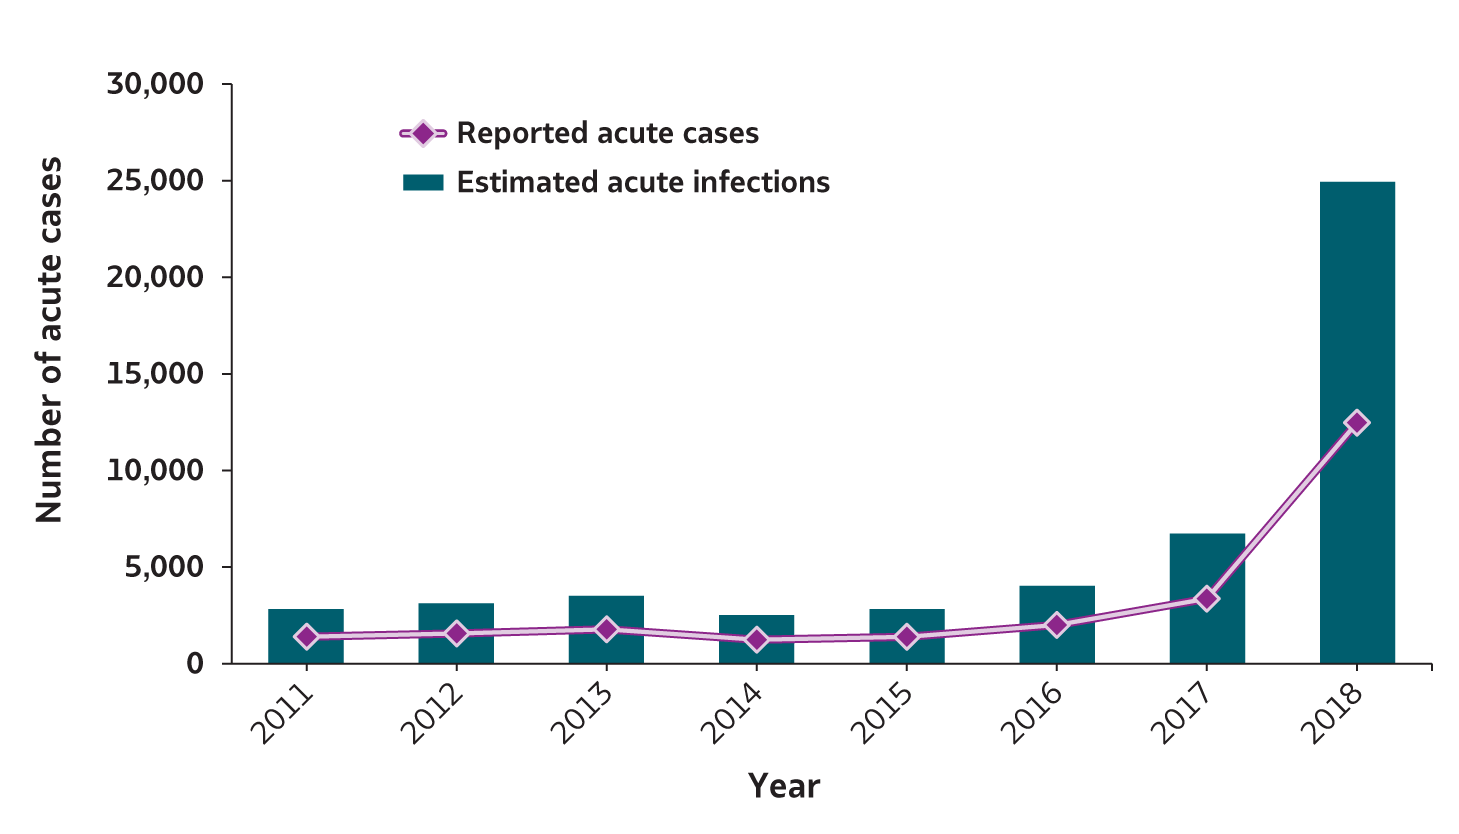 Figure 1.1.  Number of reported hepatitis A cases and estimated infections – United States, 2011-2018.  From 2011 – 2015, the number of reported cases and estimated hepatitis A infections generally remained constant, followed by an increase each year from 2016 through 2018.